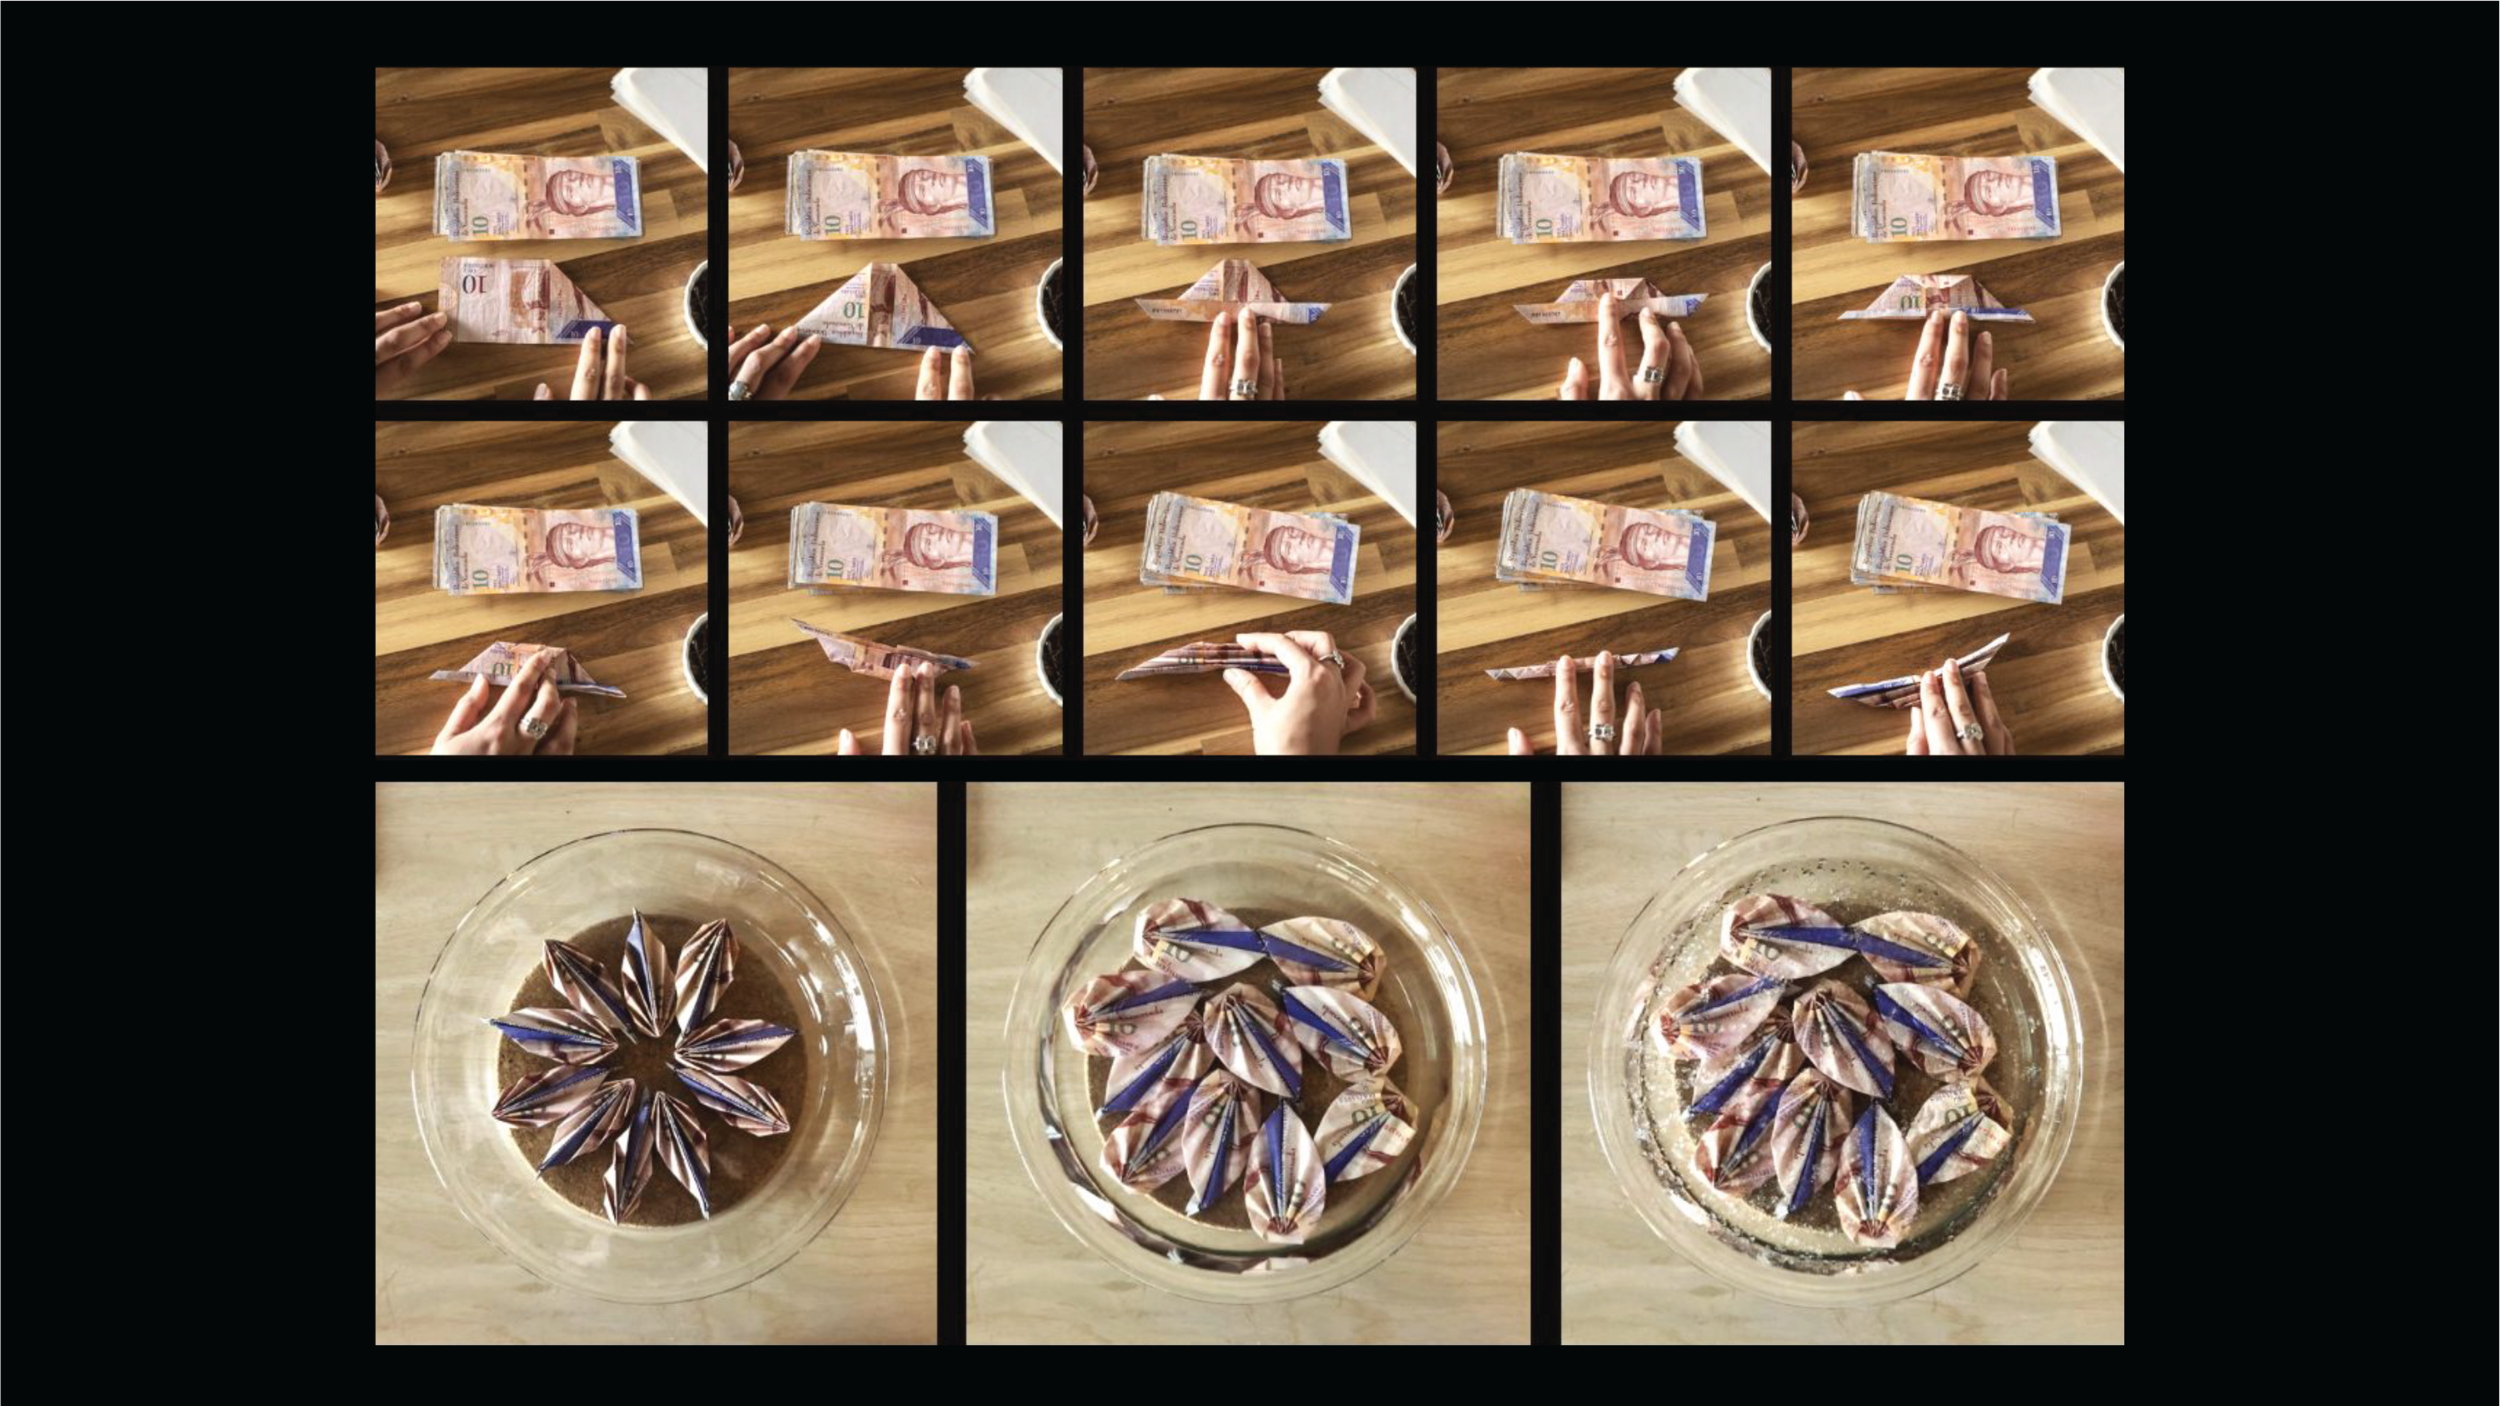 ~   So I began experimenting, and crafting new rituals using the currency as a source material. Here you can see Venezuelan bolívares that I folded and transformed. Observers have described them as shells, leaves, petals and tear drops. Refractions of my nostalgia - for a Venezuela I can no longer return too.